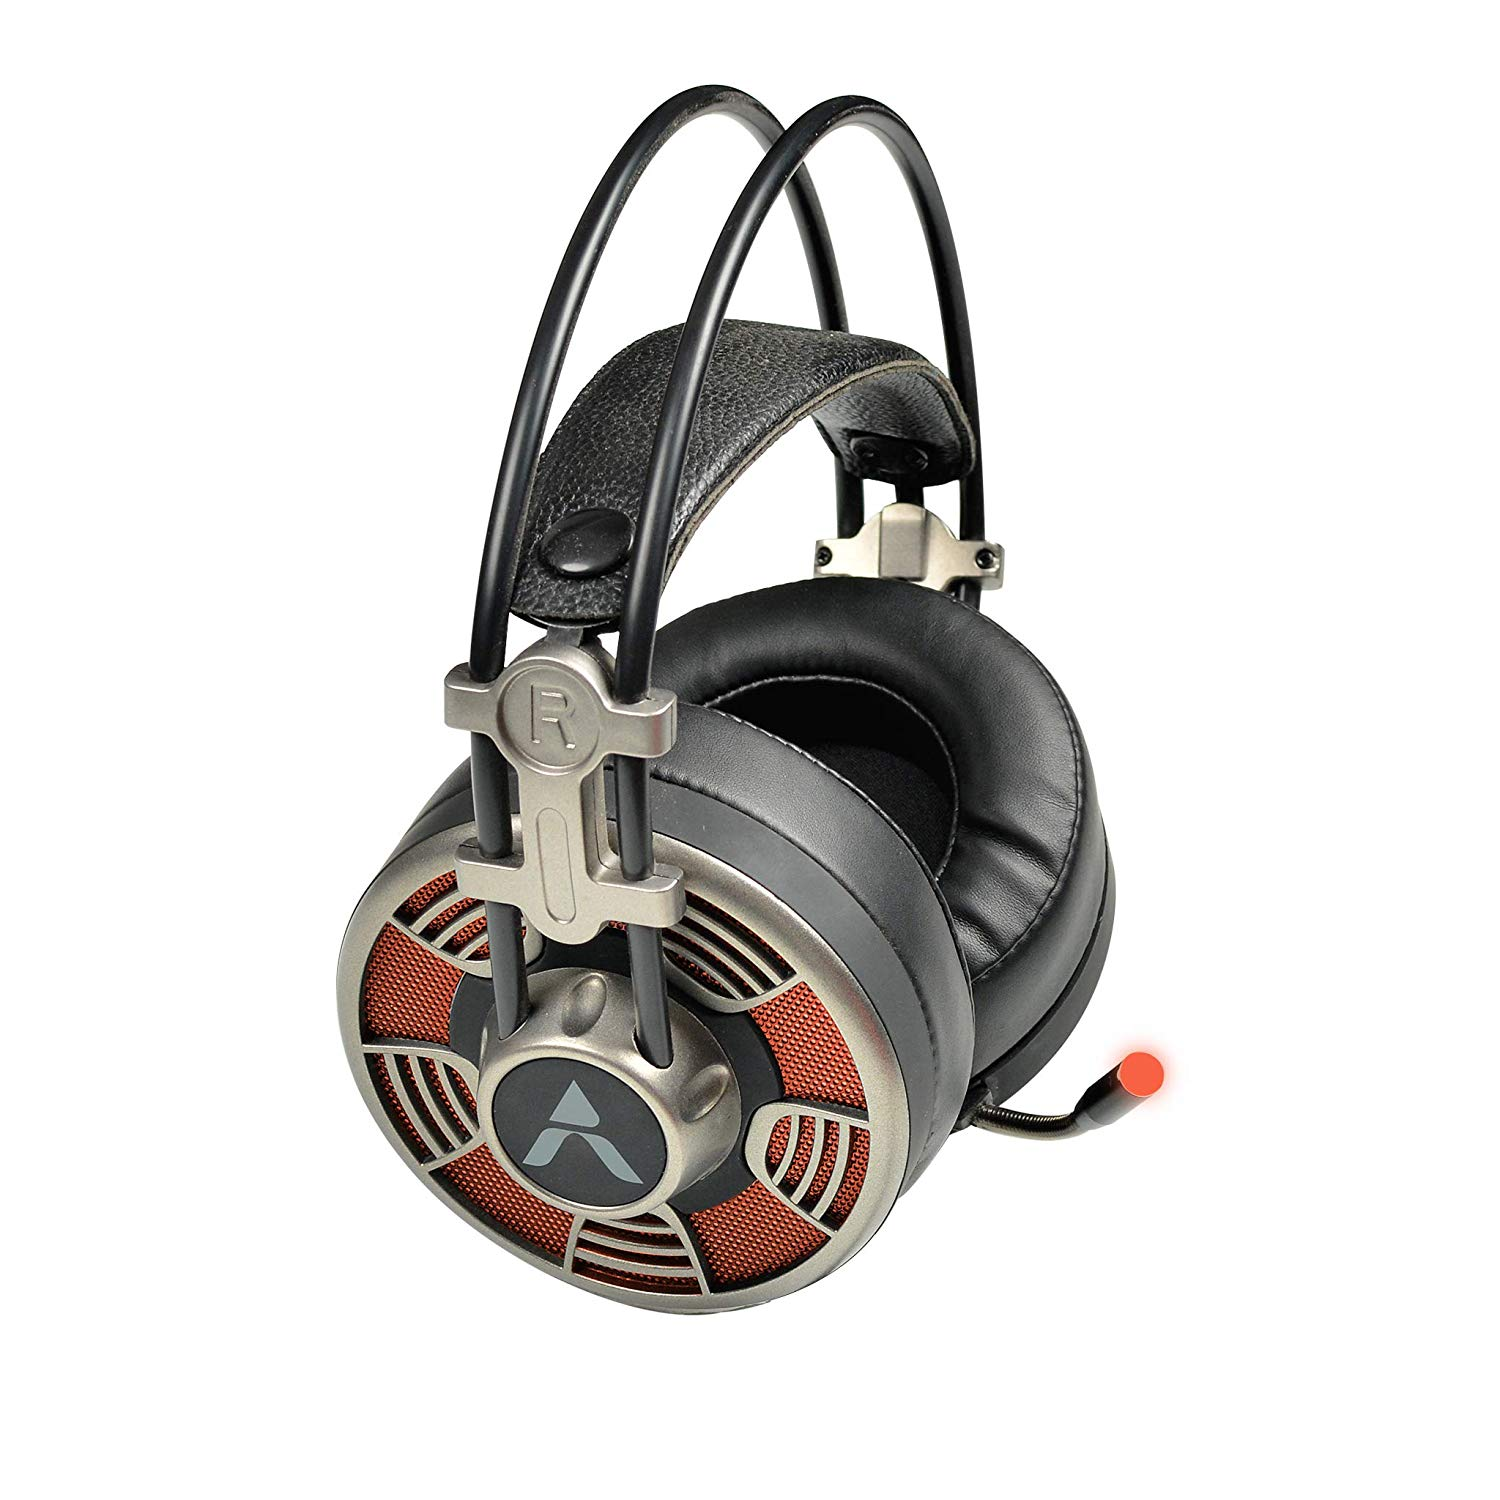 Adcom Vision Gaming Headphone